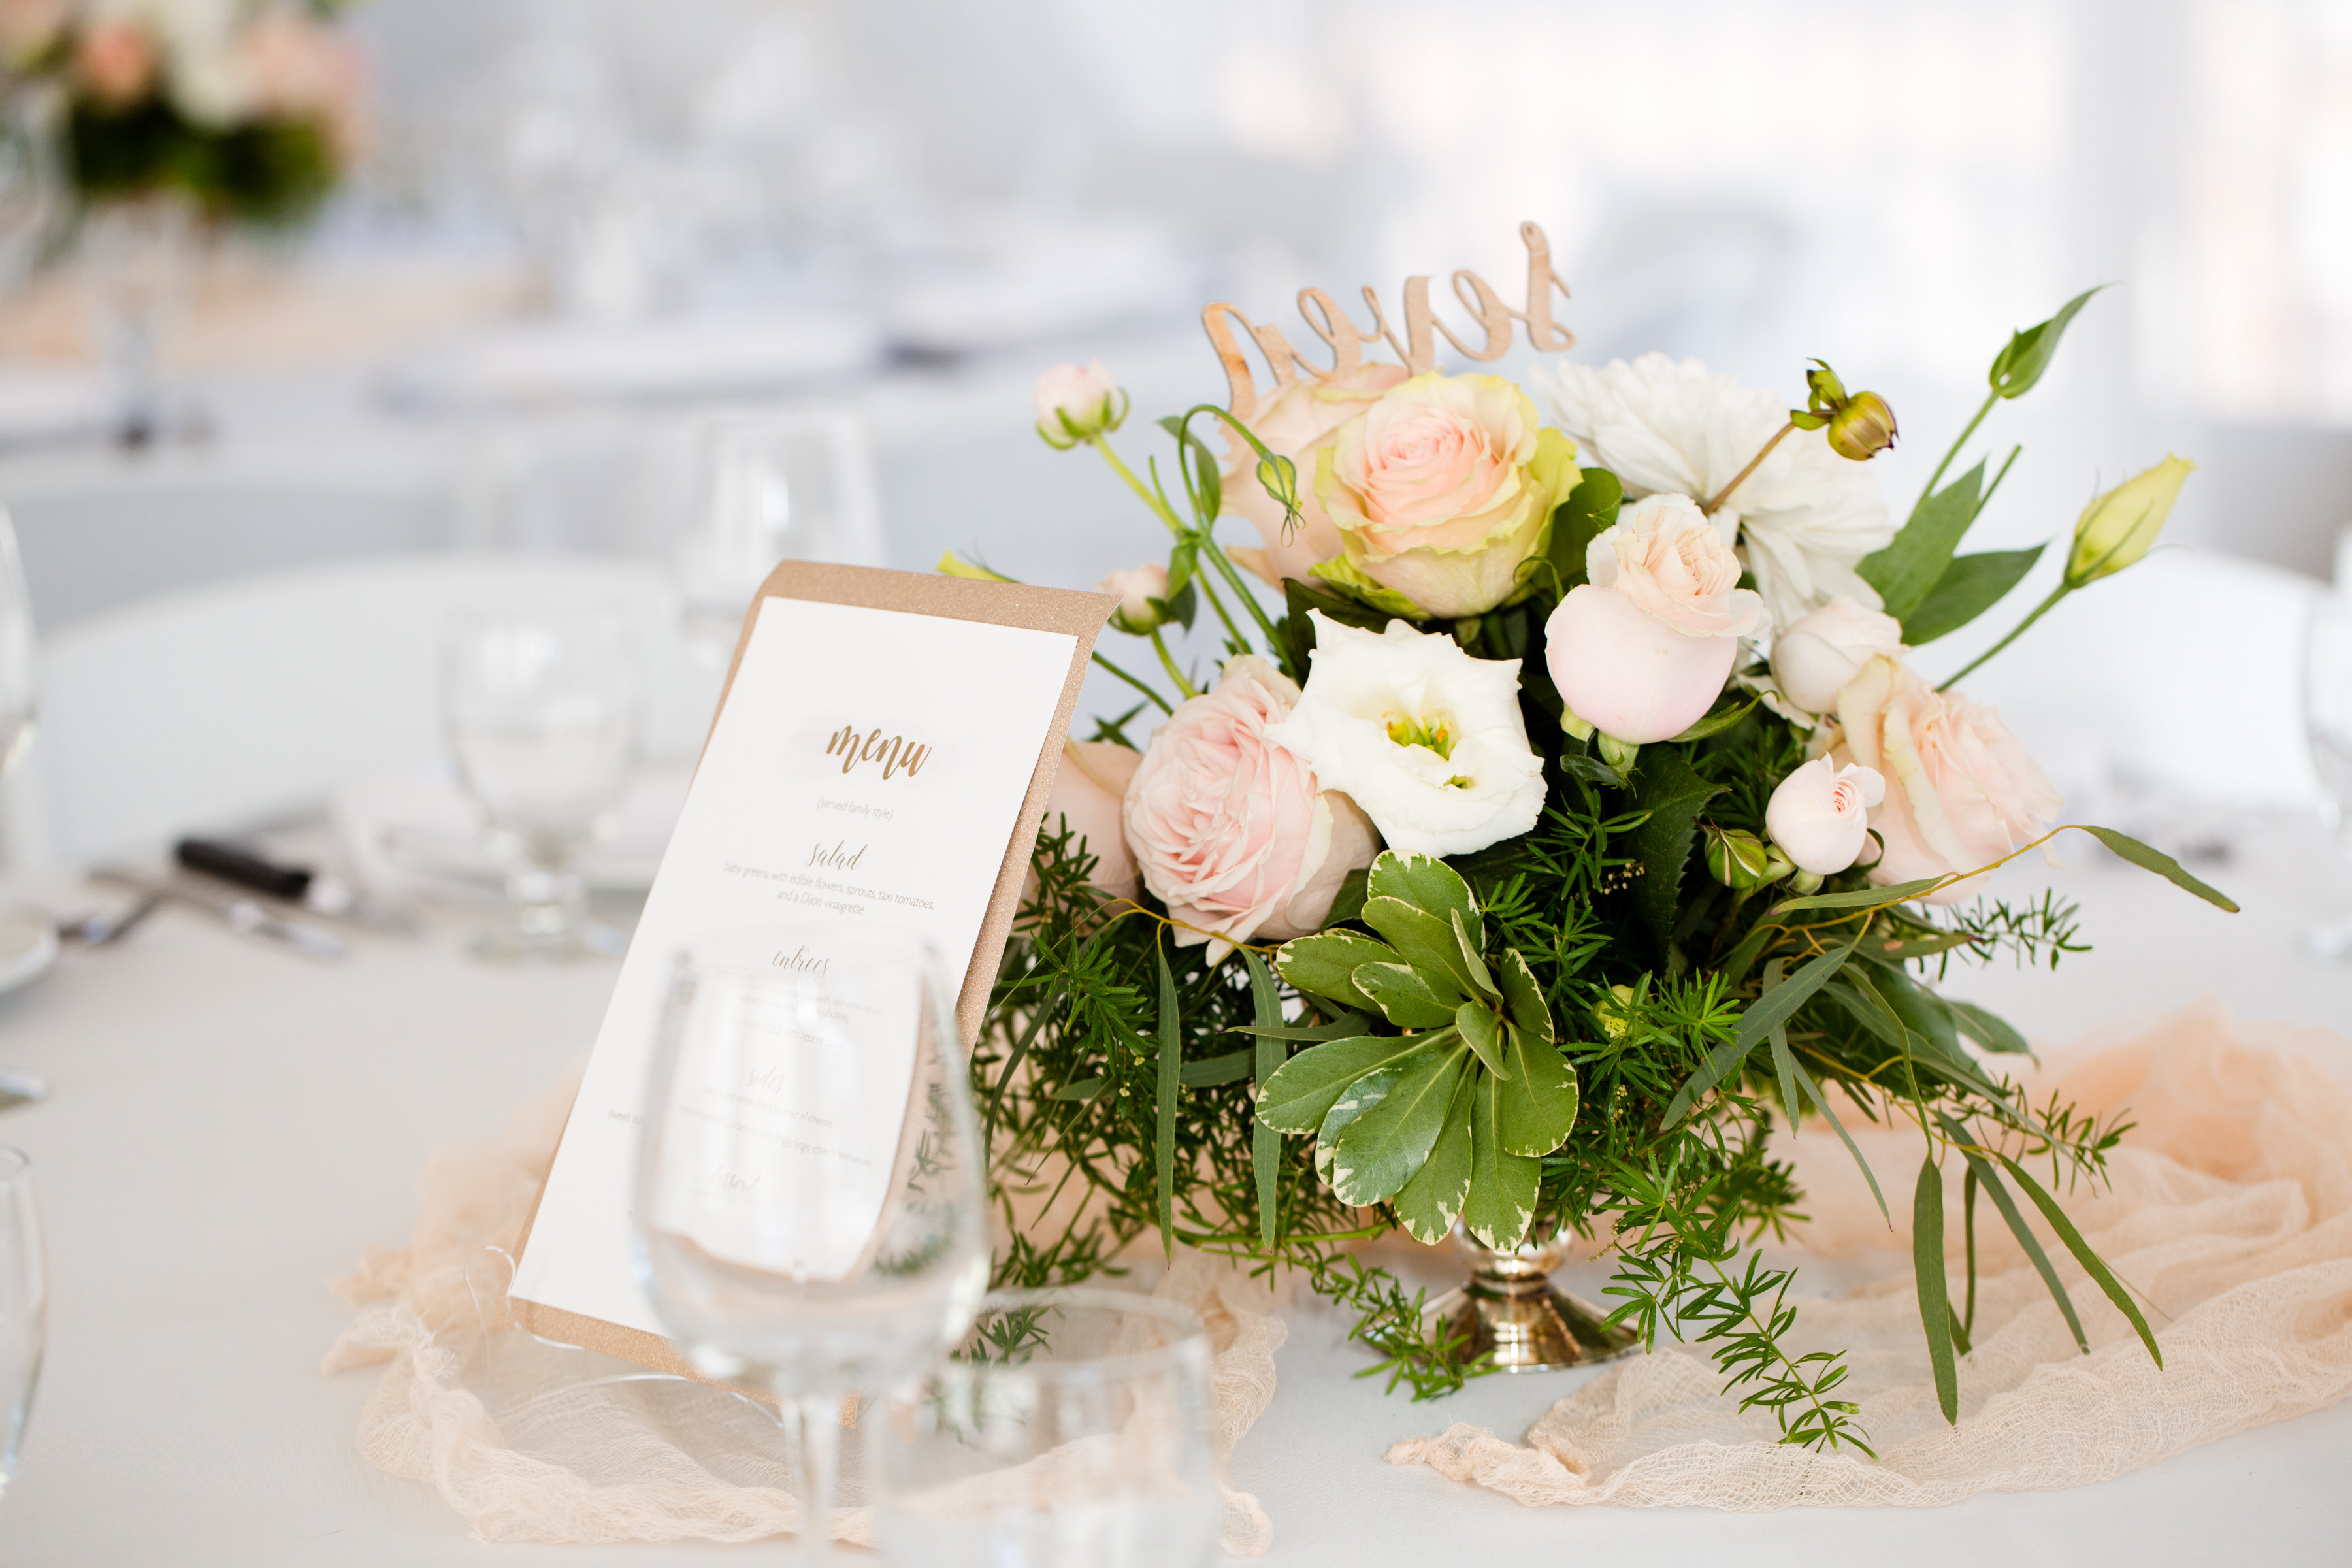 A_Floral_Affair_Gardnerville_Tahoe_Reno_Wedding_Florist_Reception_Centerpiece (8)